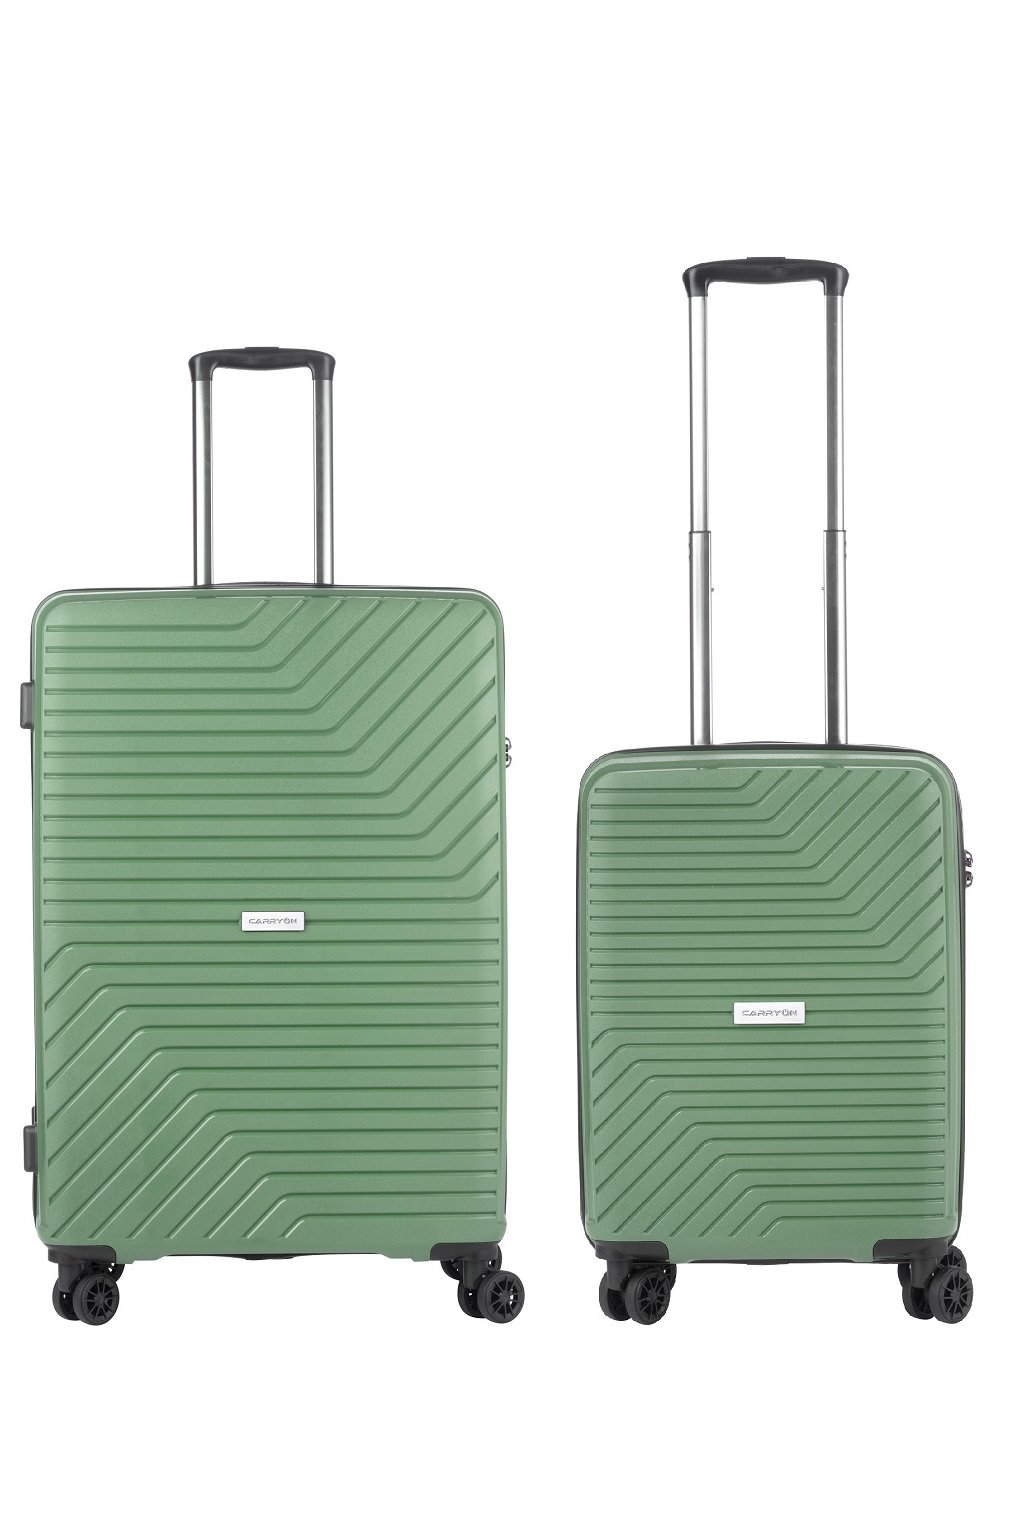 kufrland carryon transport green (26)